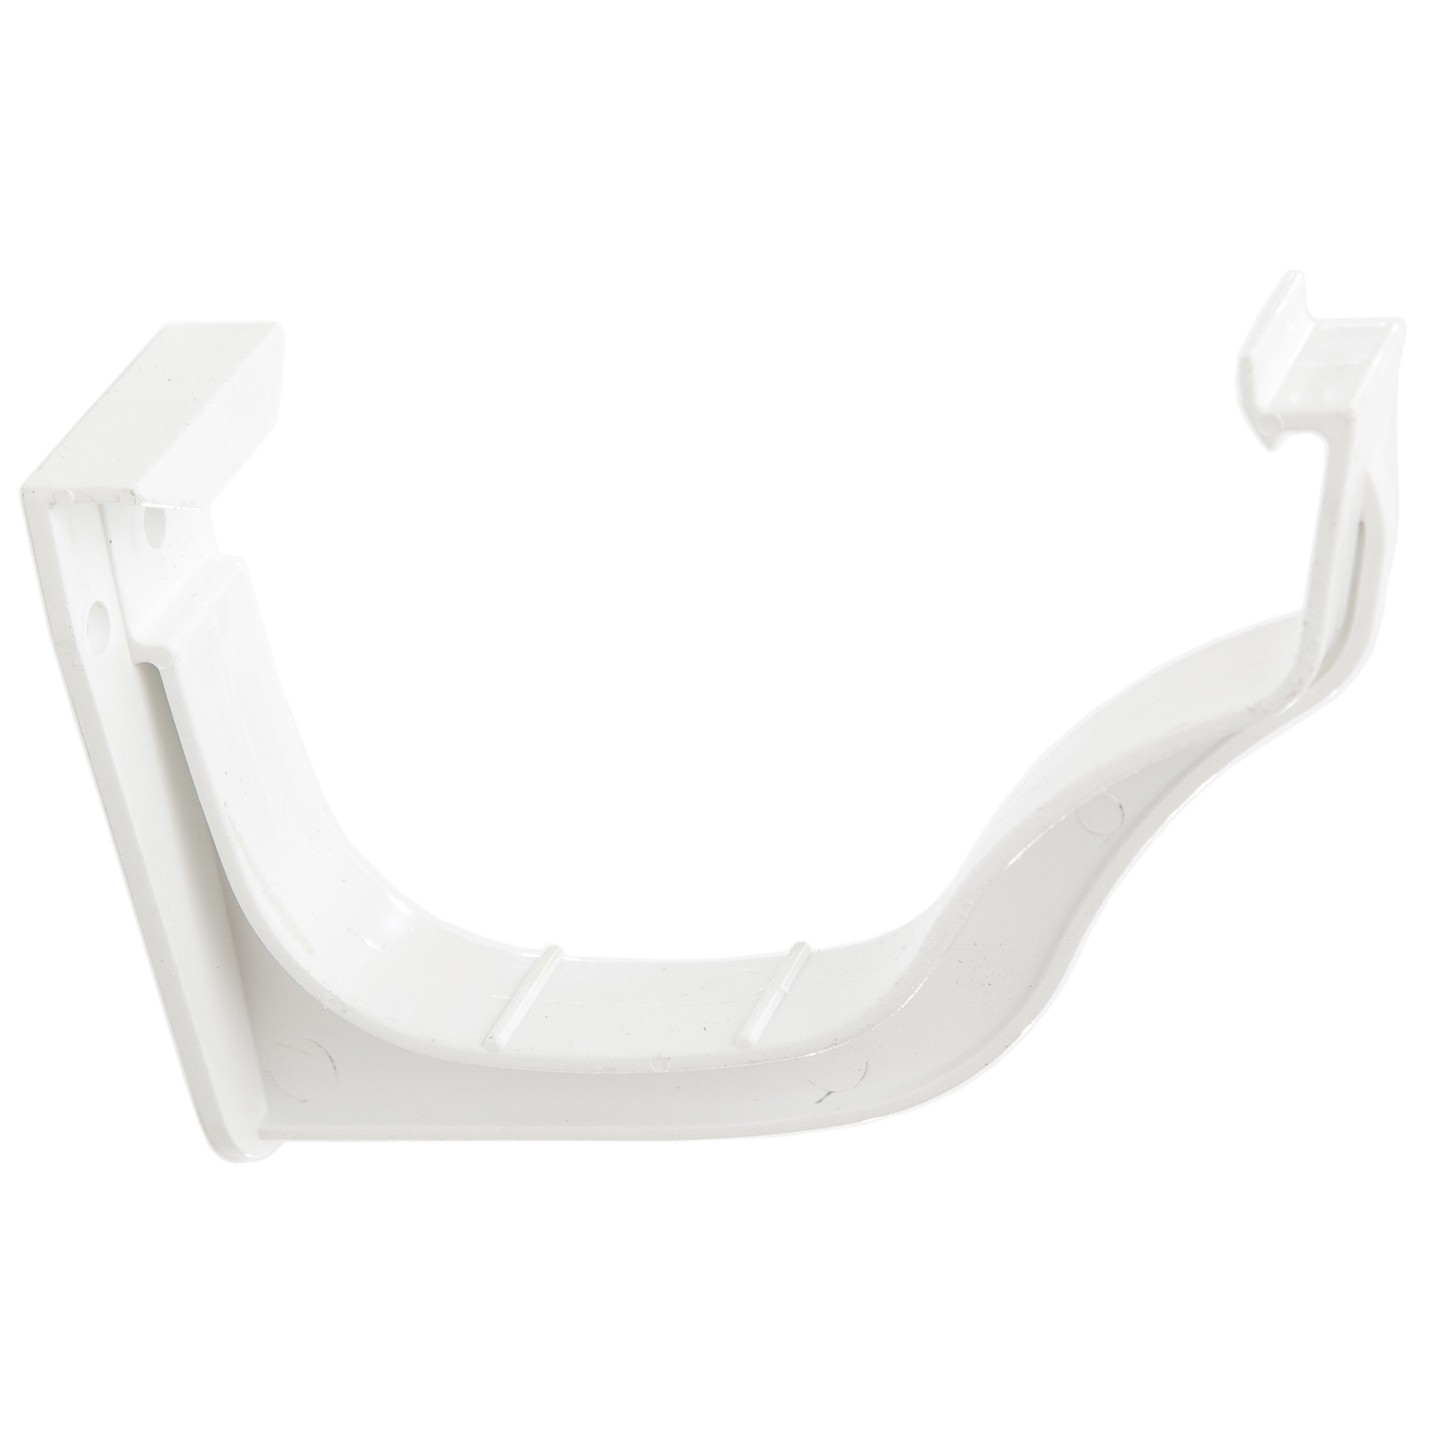 Polypipe 130mm Ogee Extra Capacity Gutter Fascia Bracket - White